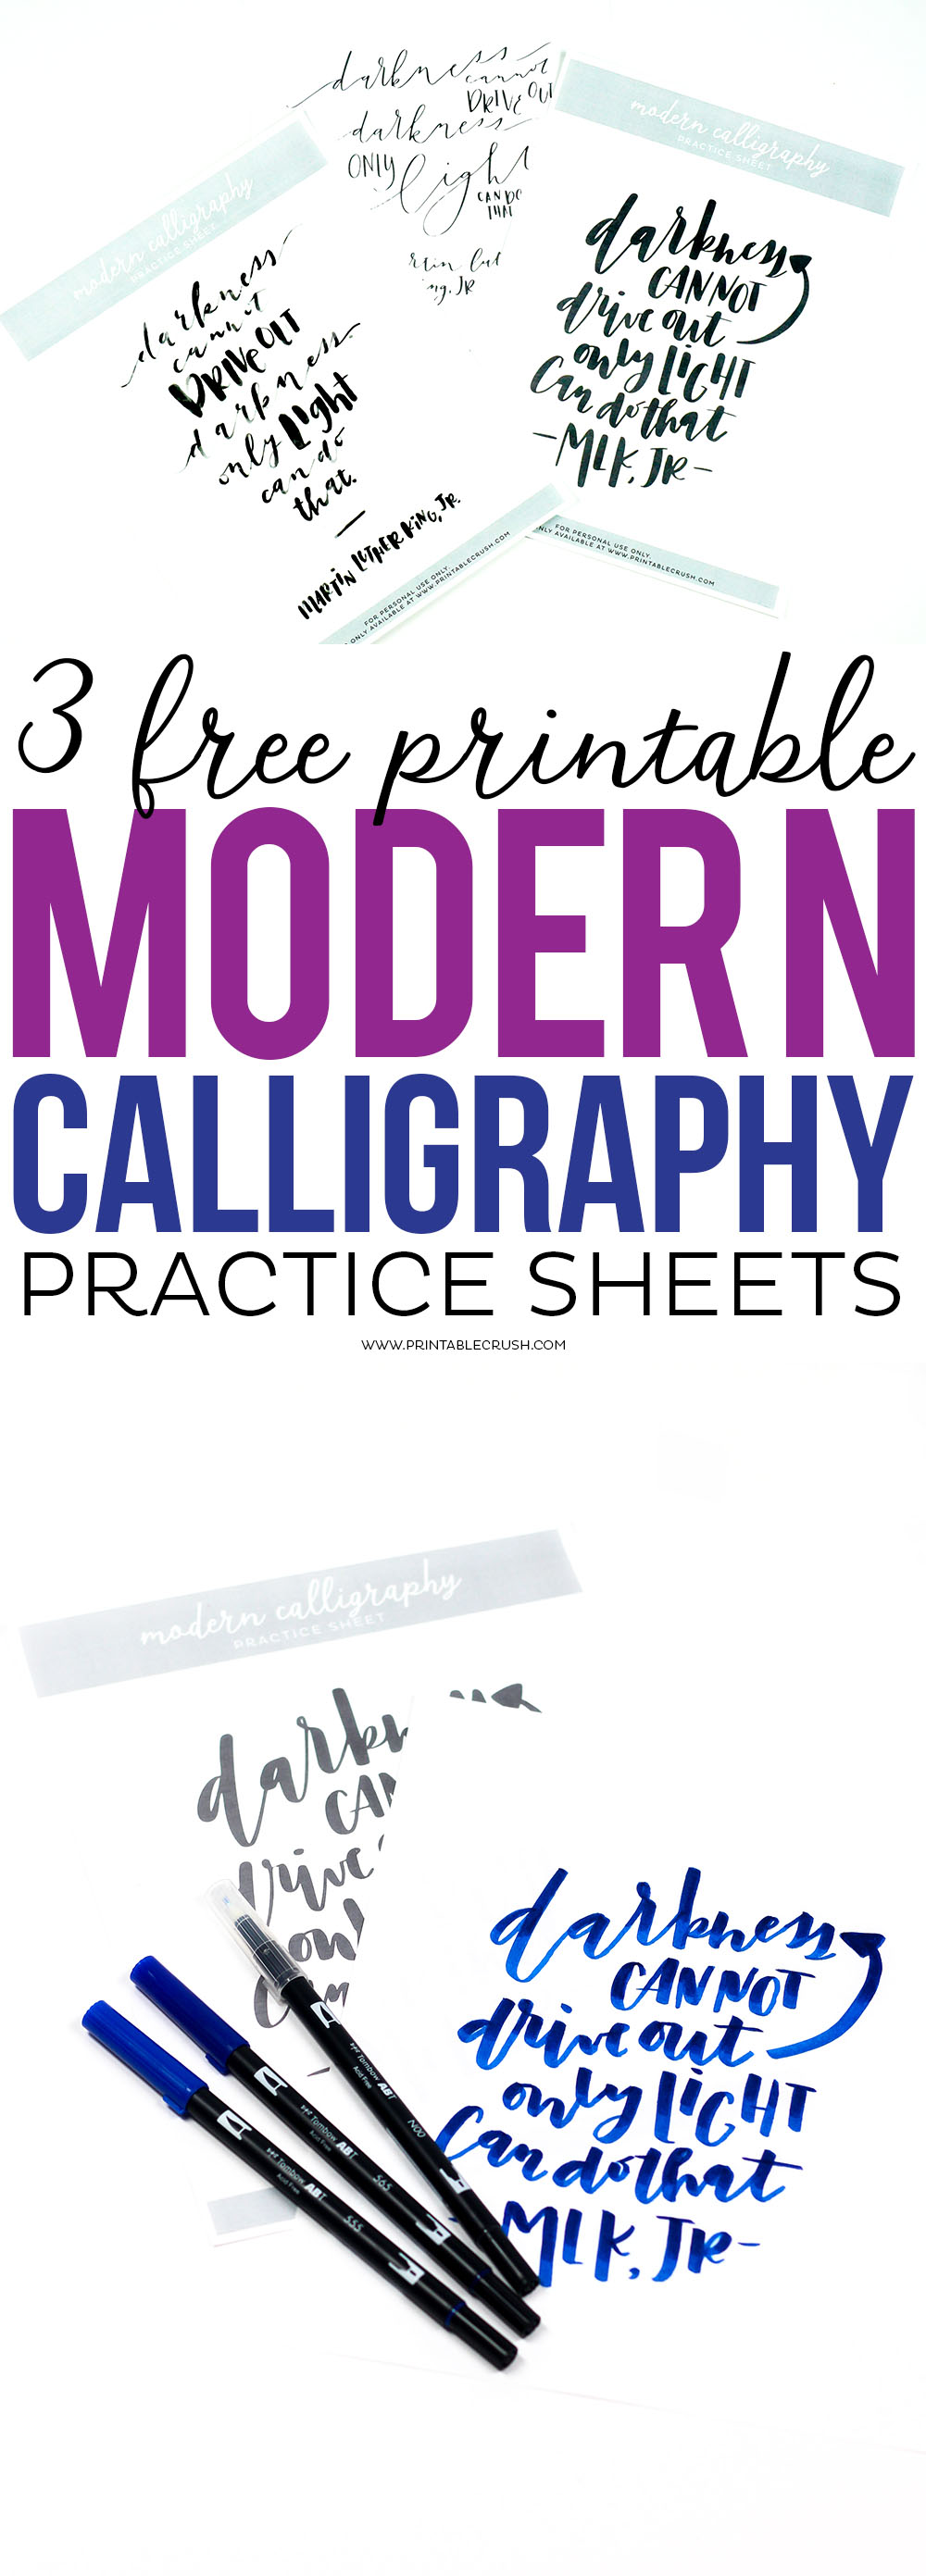 photo about Printable Calligraphy Practice identified as 3 Totally free Printable Innovative Calligraphy Prepare Sheets